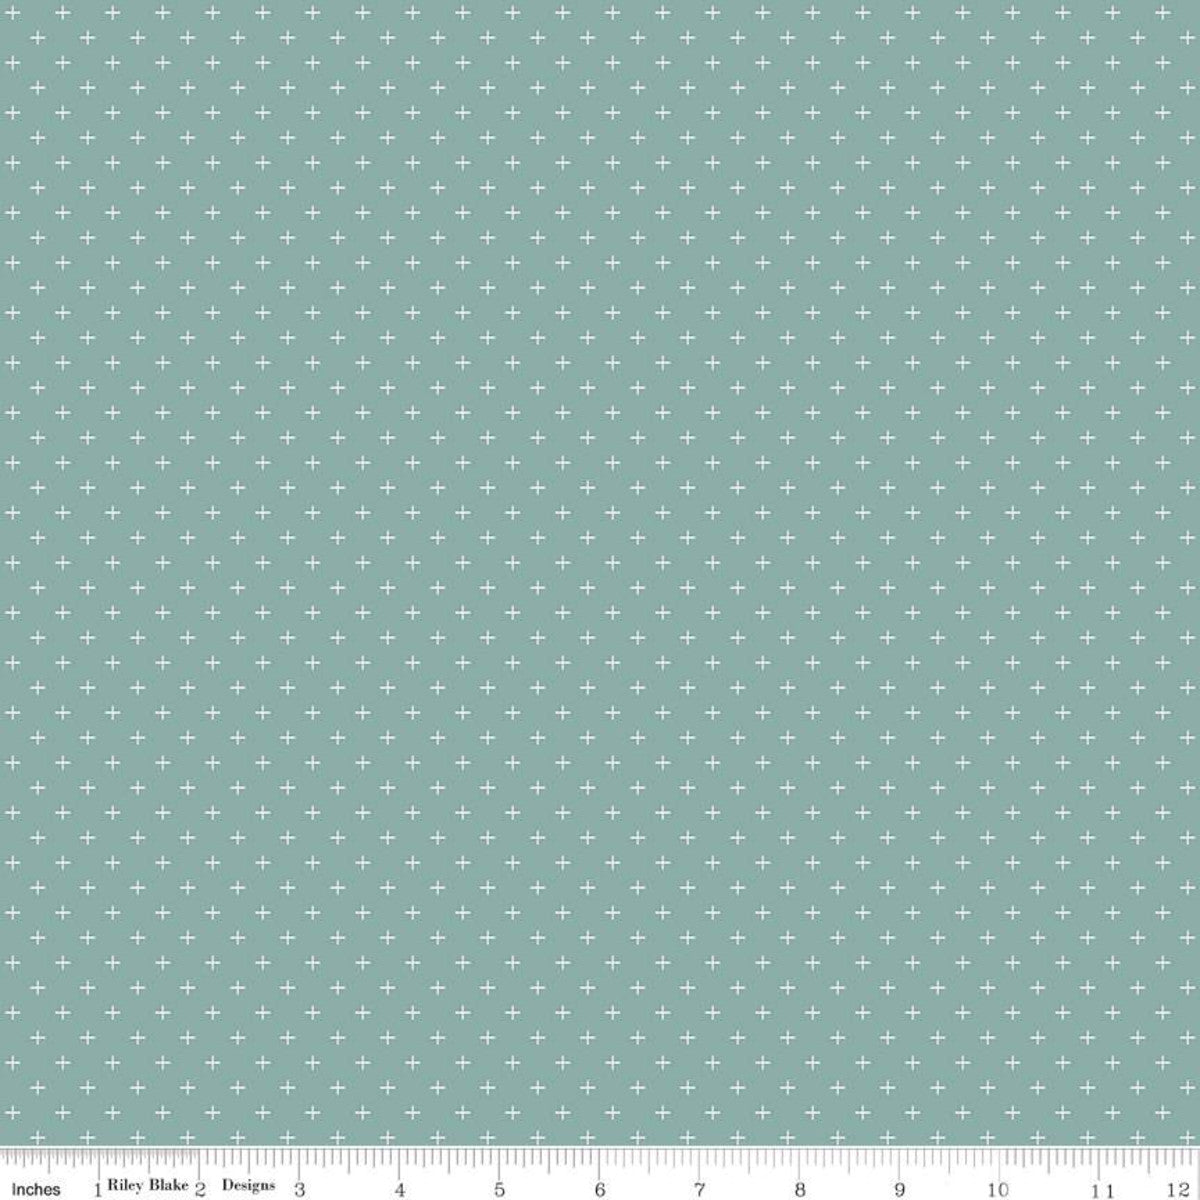 Gingham Gardens - Plus Teal